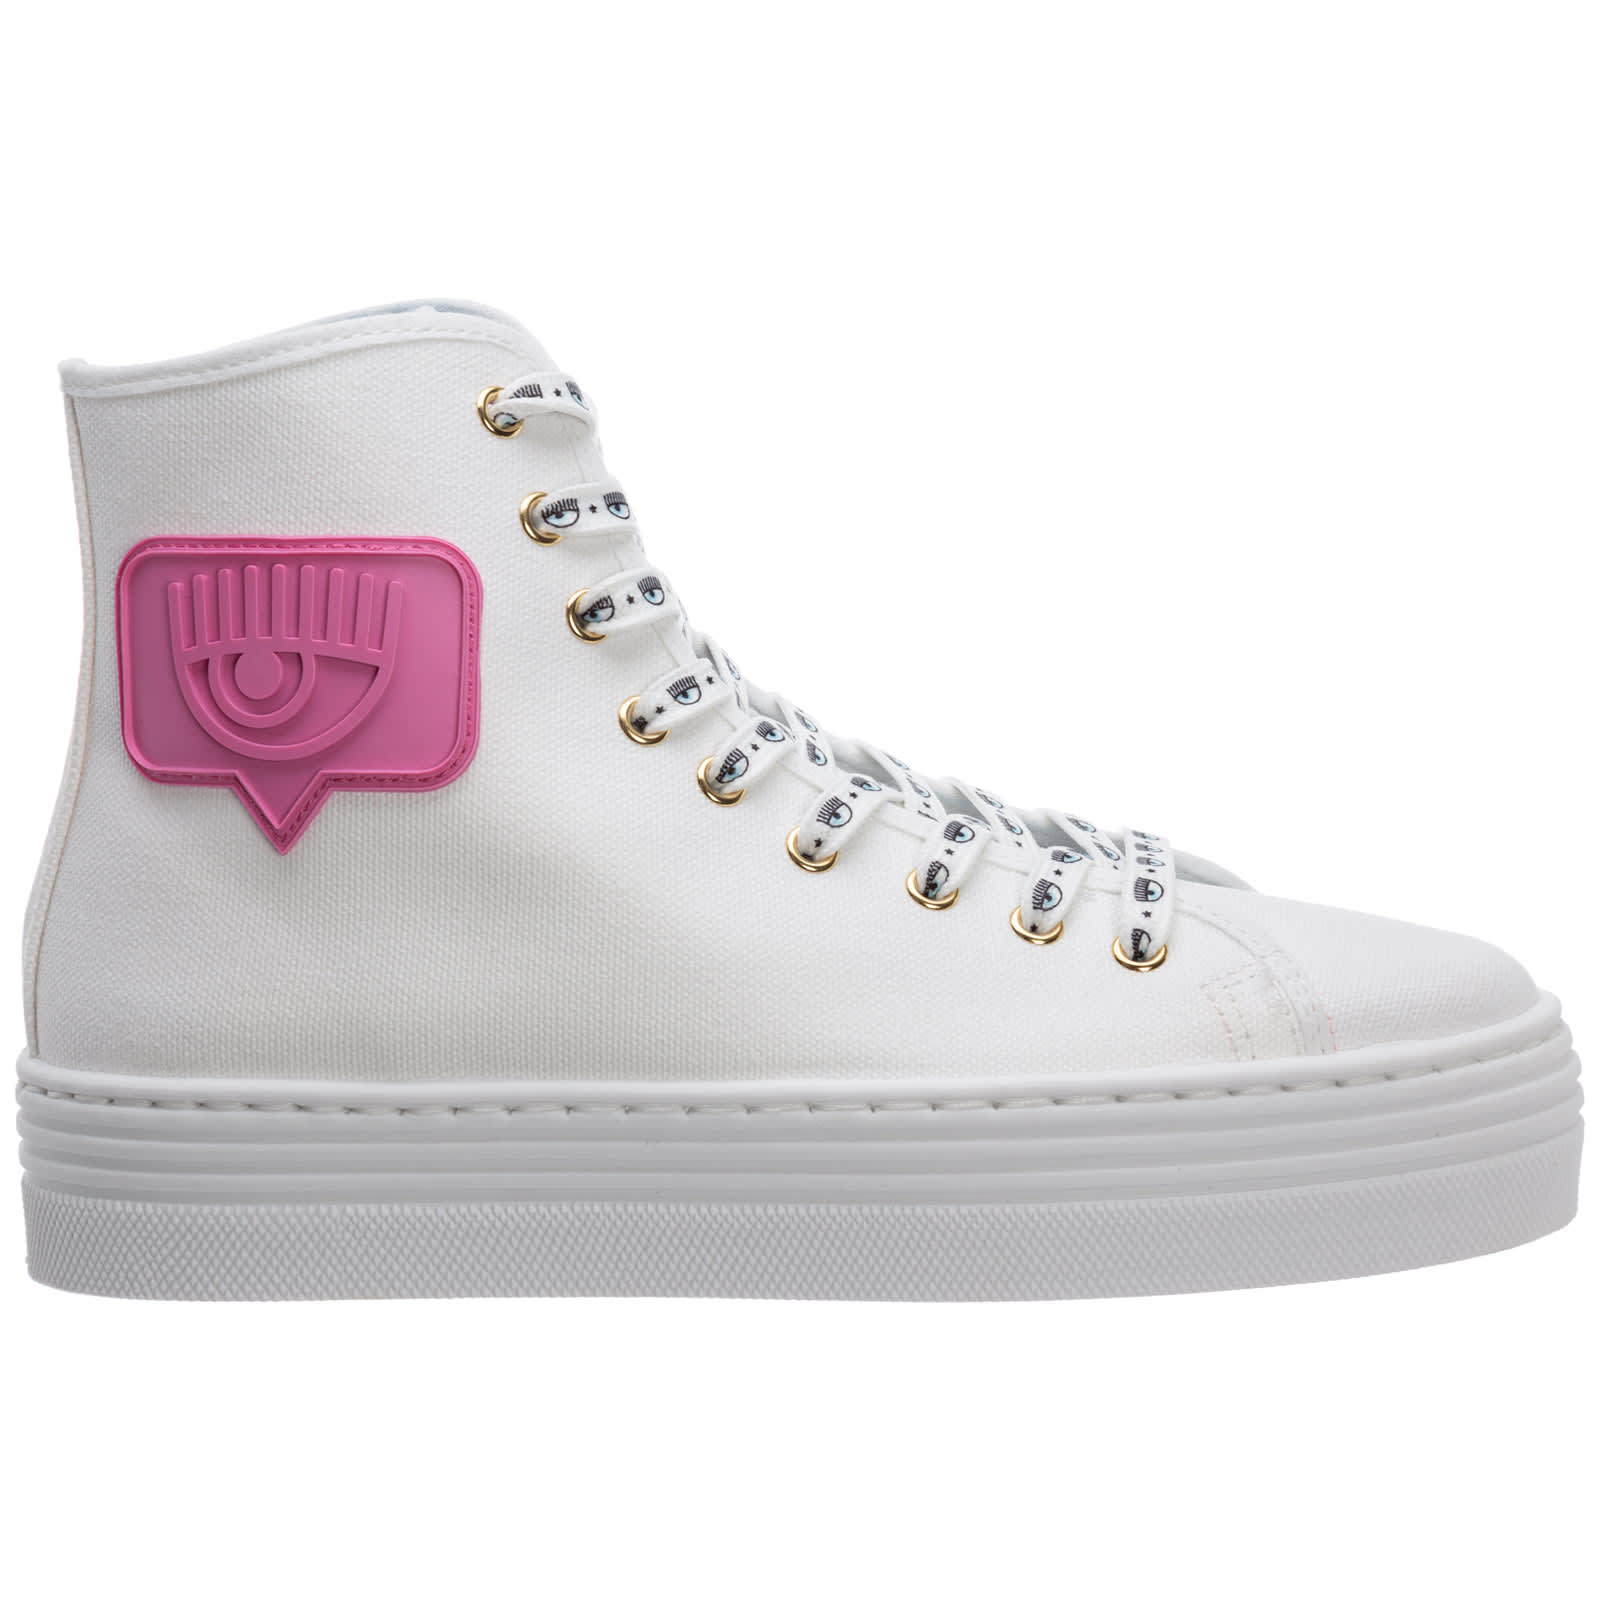 Chiara Ferragni EYELIKE HIGH-TOP SNEAKERS